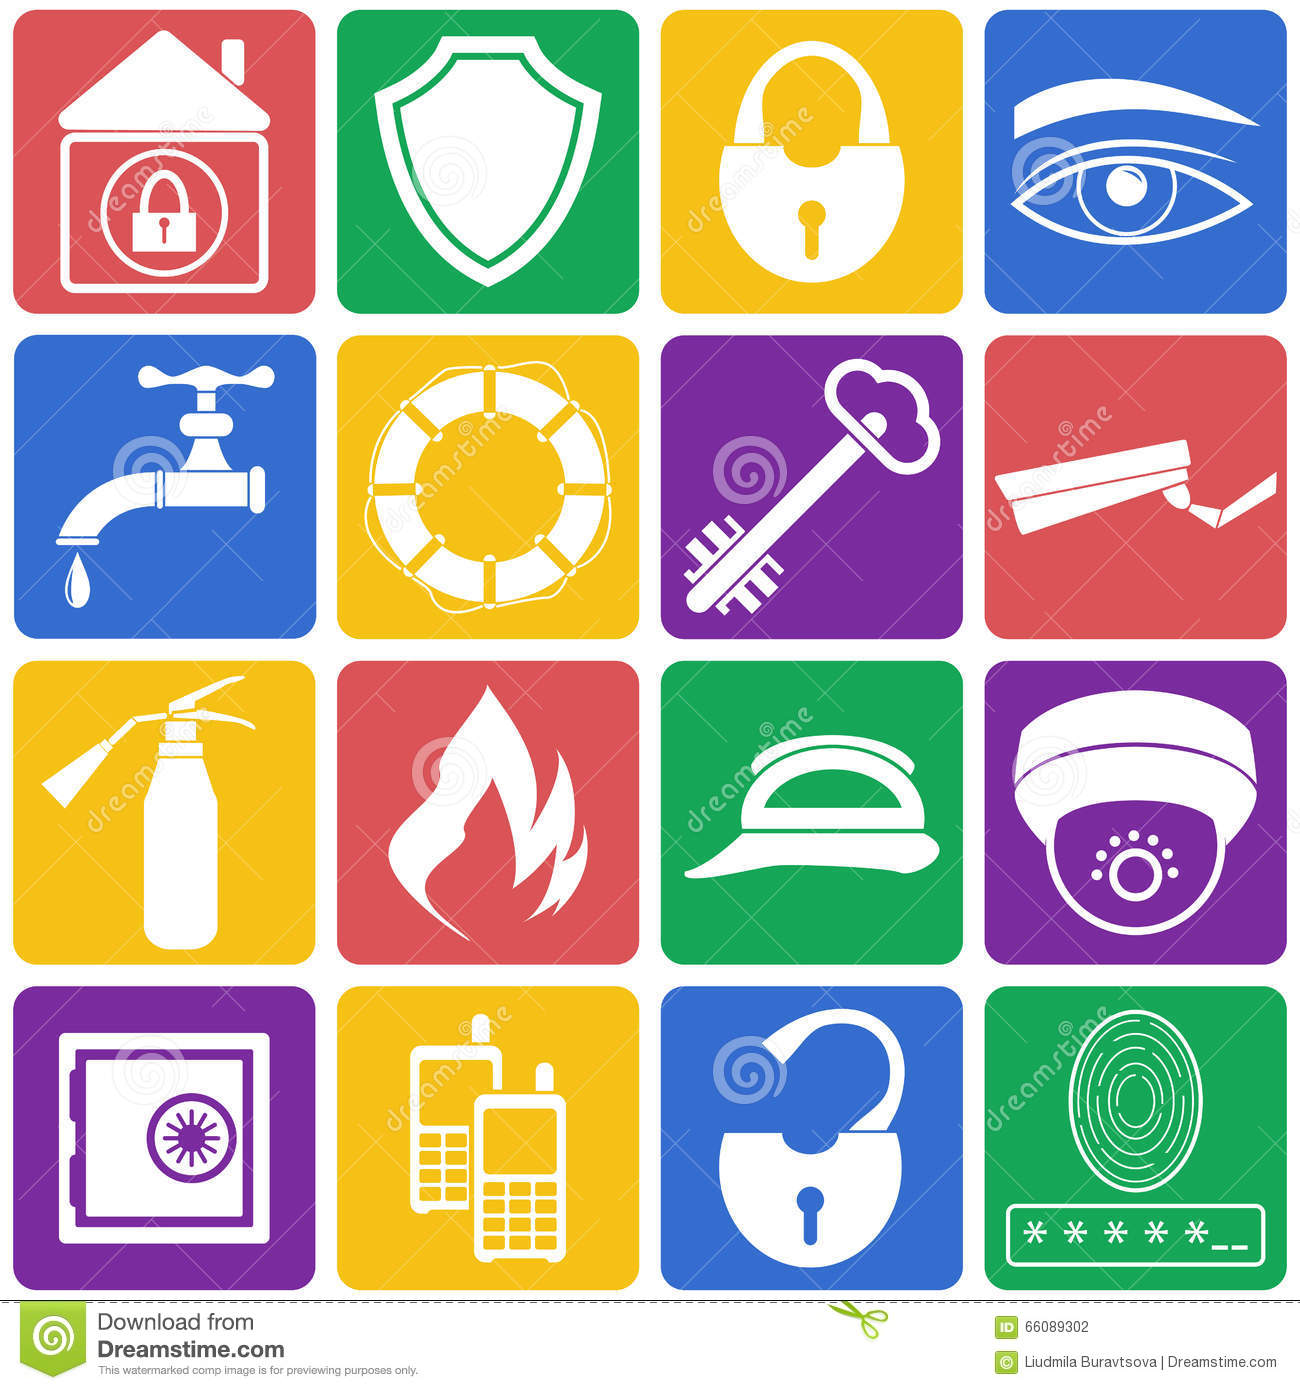 Venta De Sistemas De Seguridad Para El Hogar Lifebuoy And Safety Shield Set Icons Vector Illustration